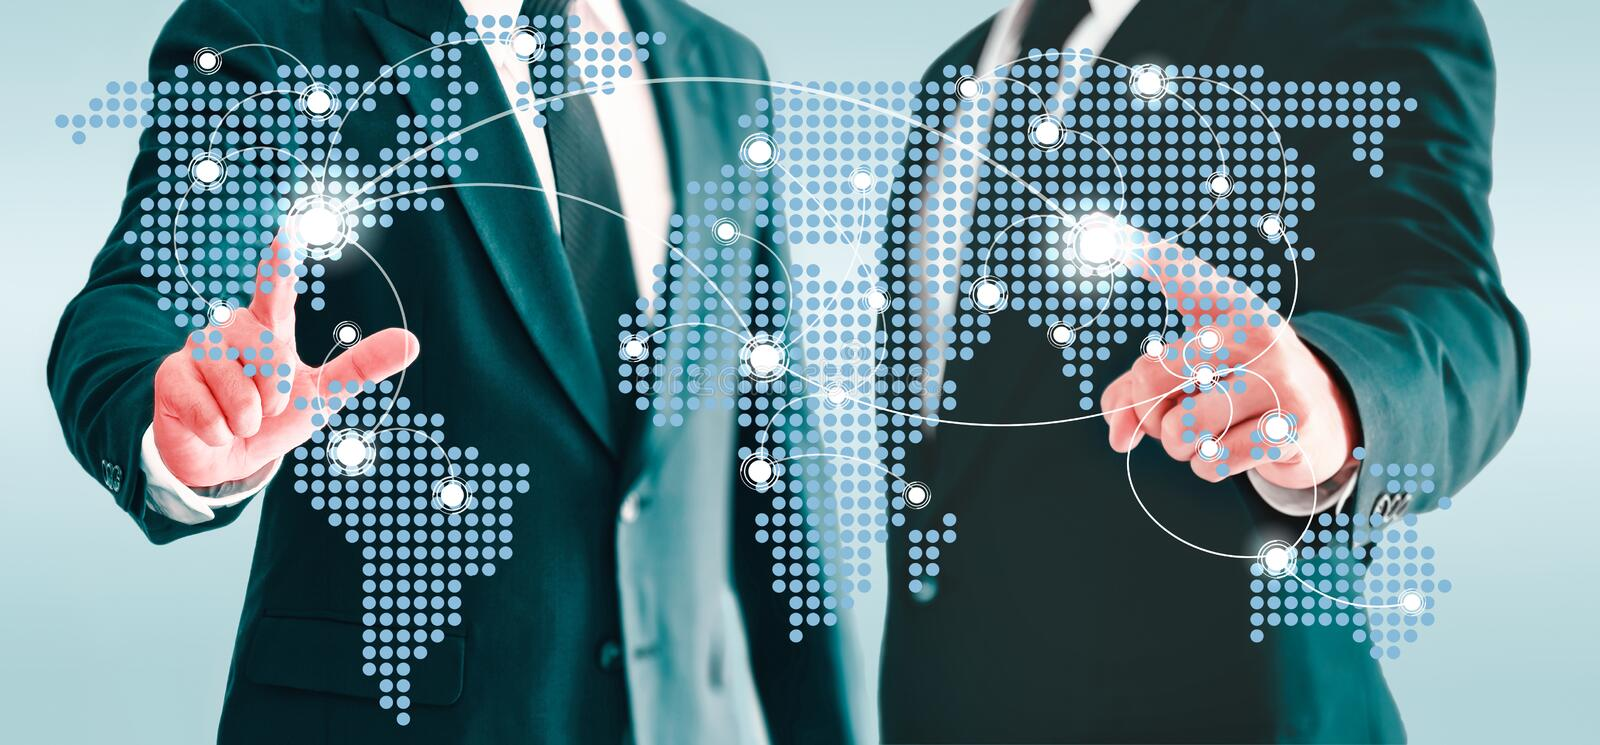 Two businessmen touching world map virtual button. Concepts of information and business contacts interconnected world stock photo